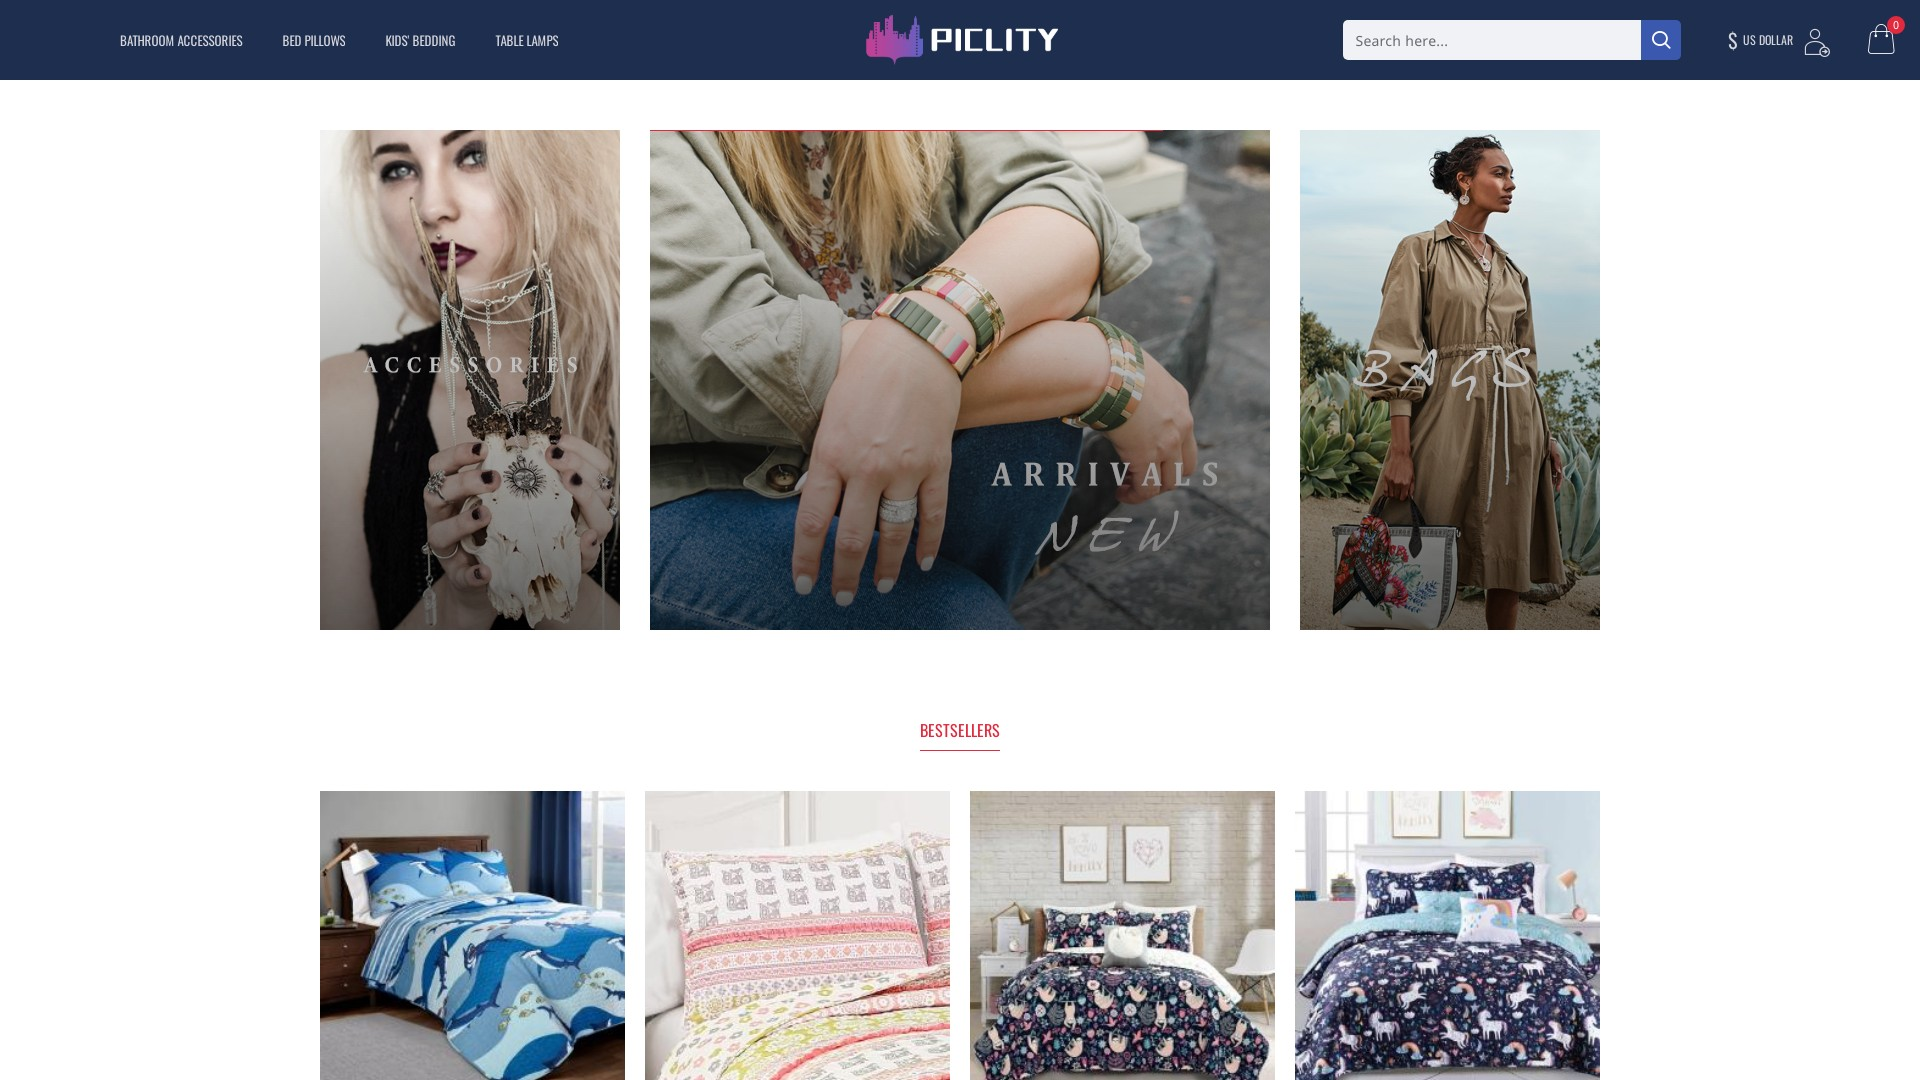 Is Piclity a Scam or is it Legit? Review of the Online Store